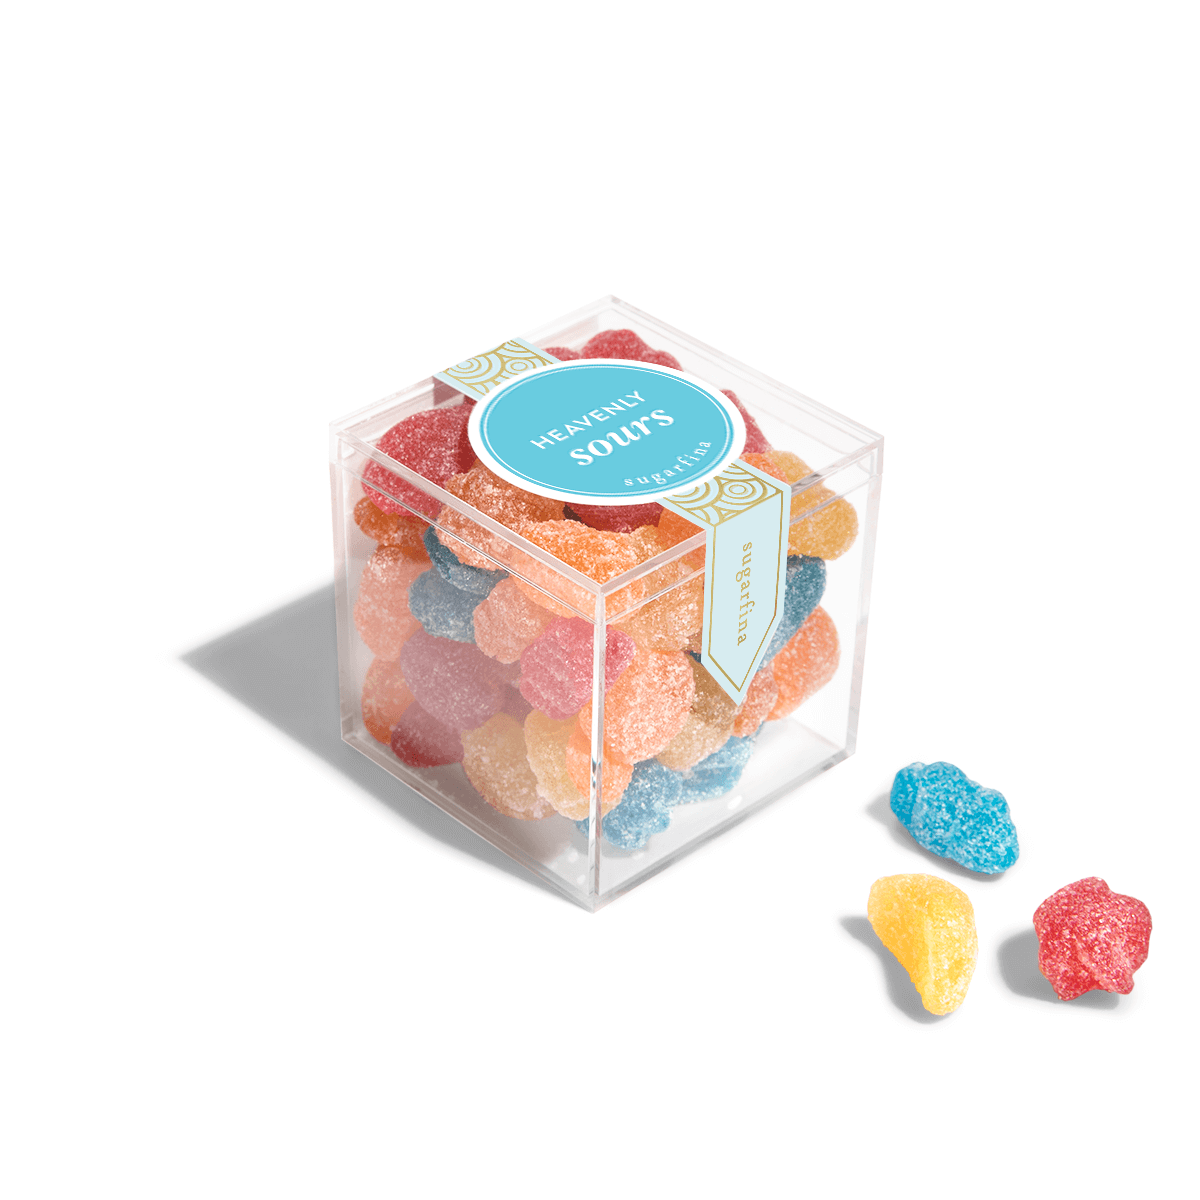 Sugarfina Heavenly Sour Gummies